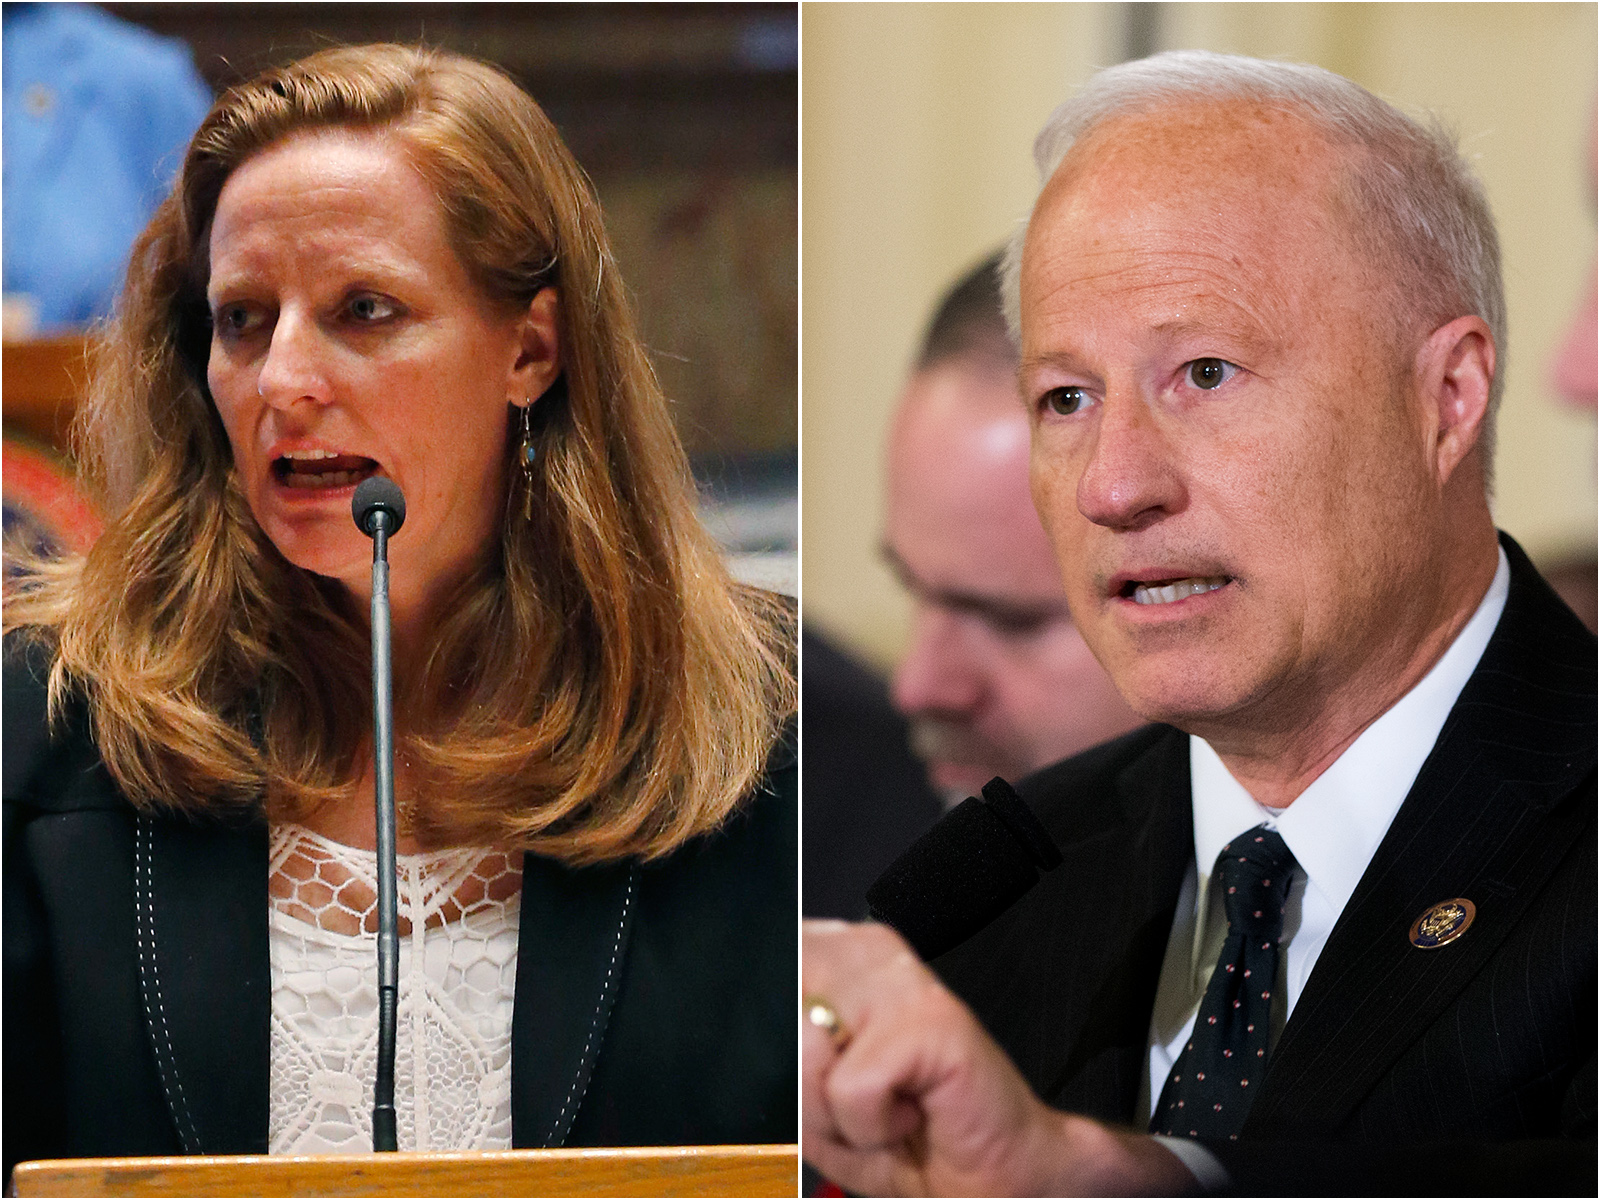 Photo: State Sen. Morgan Carroll, U.S. Rep. Mike Coffman